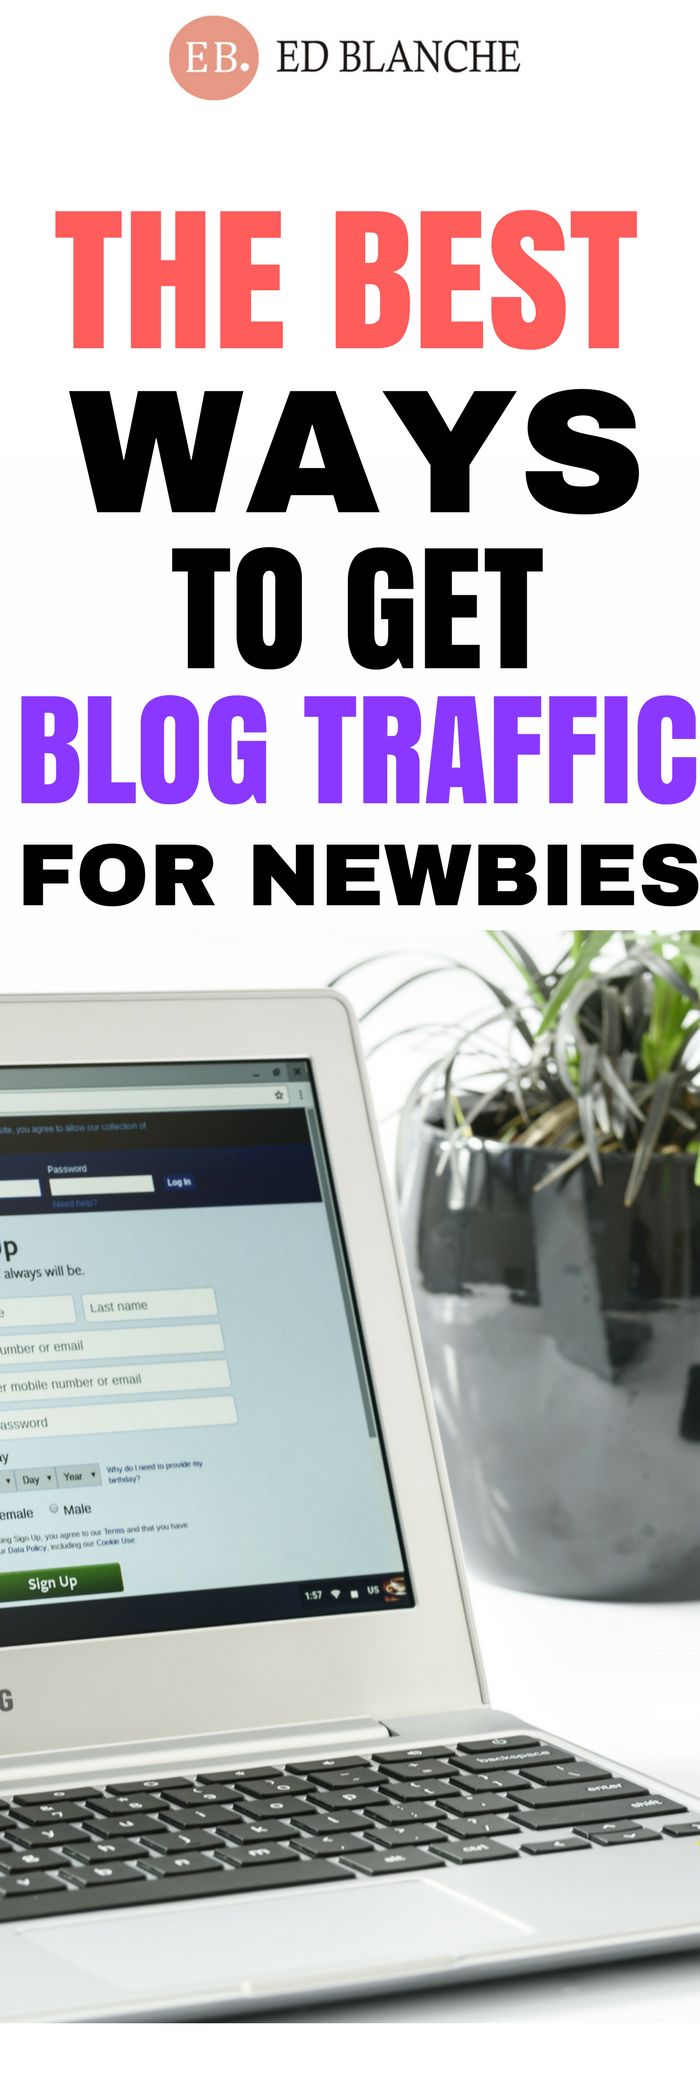 The Best Ways to Get Blog Traffic for Newbies